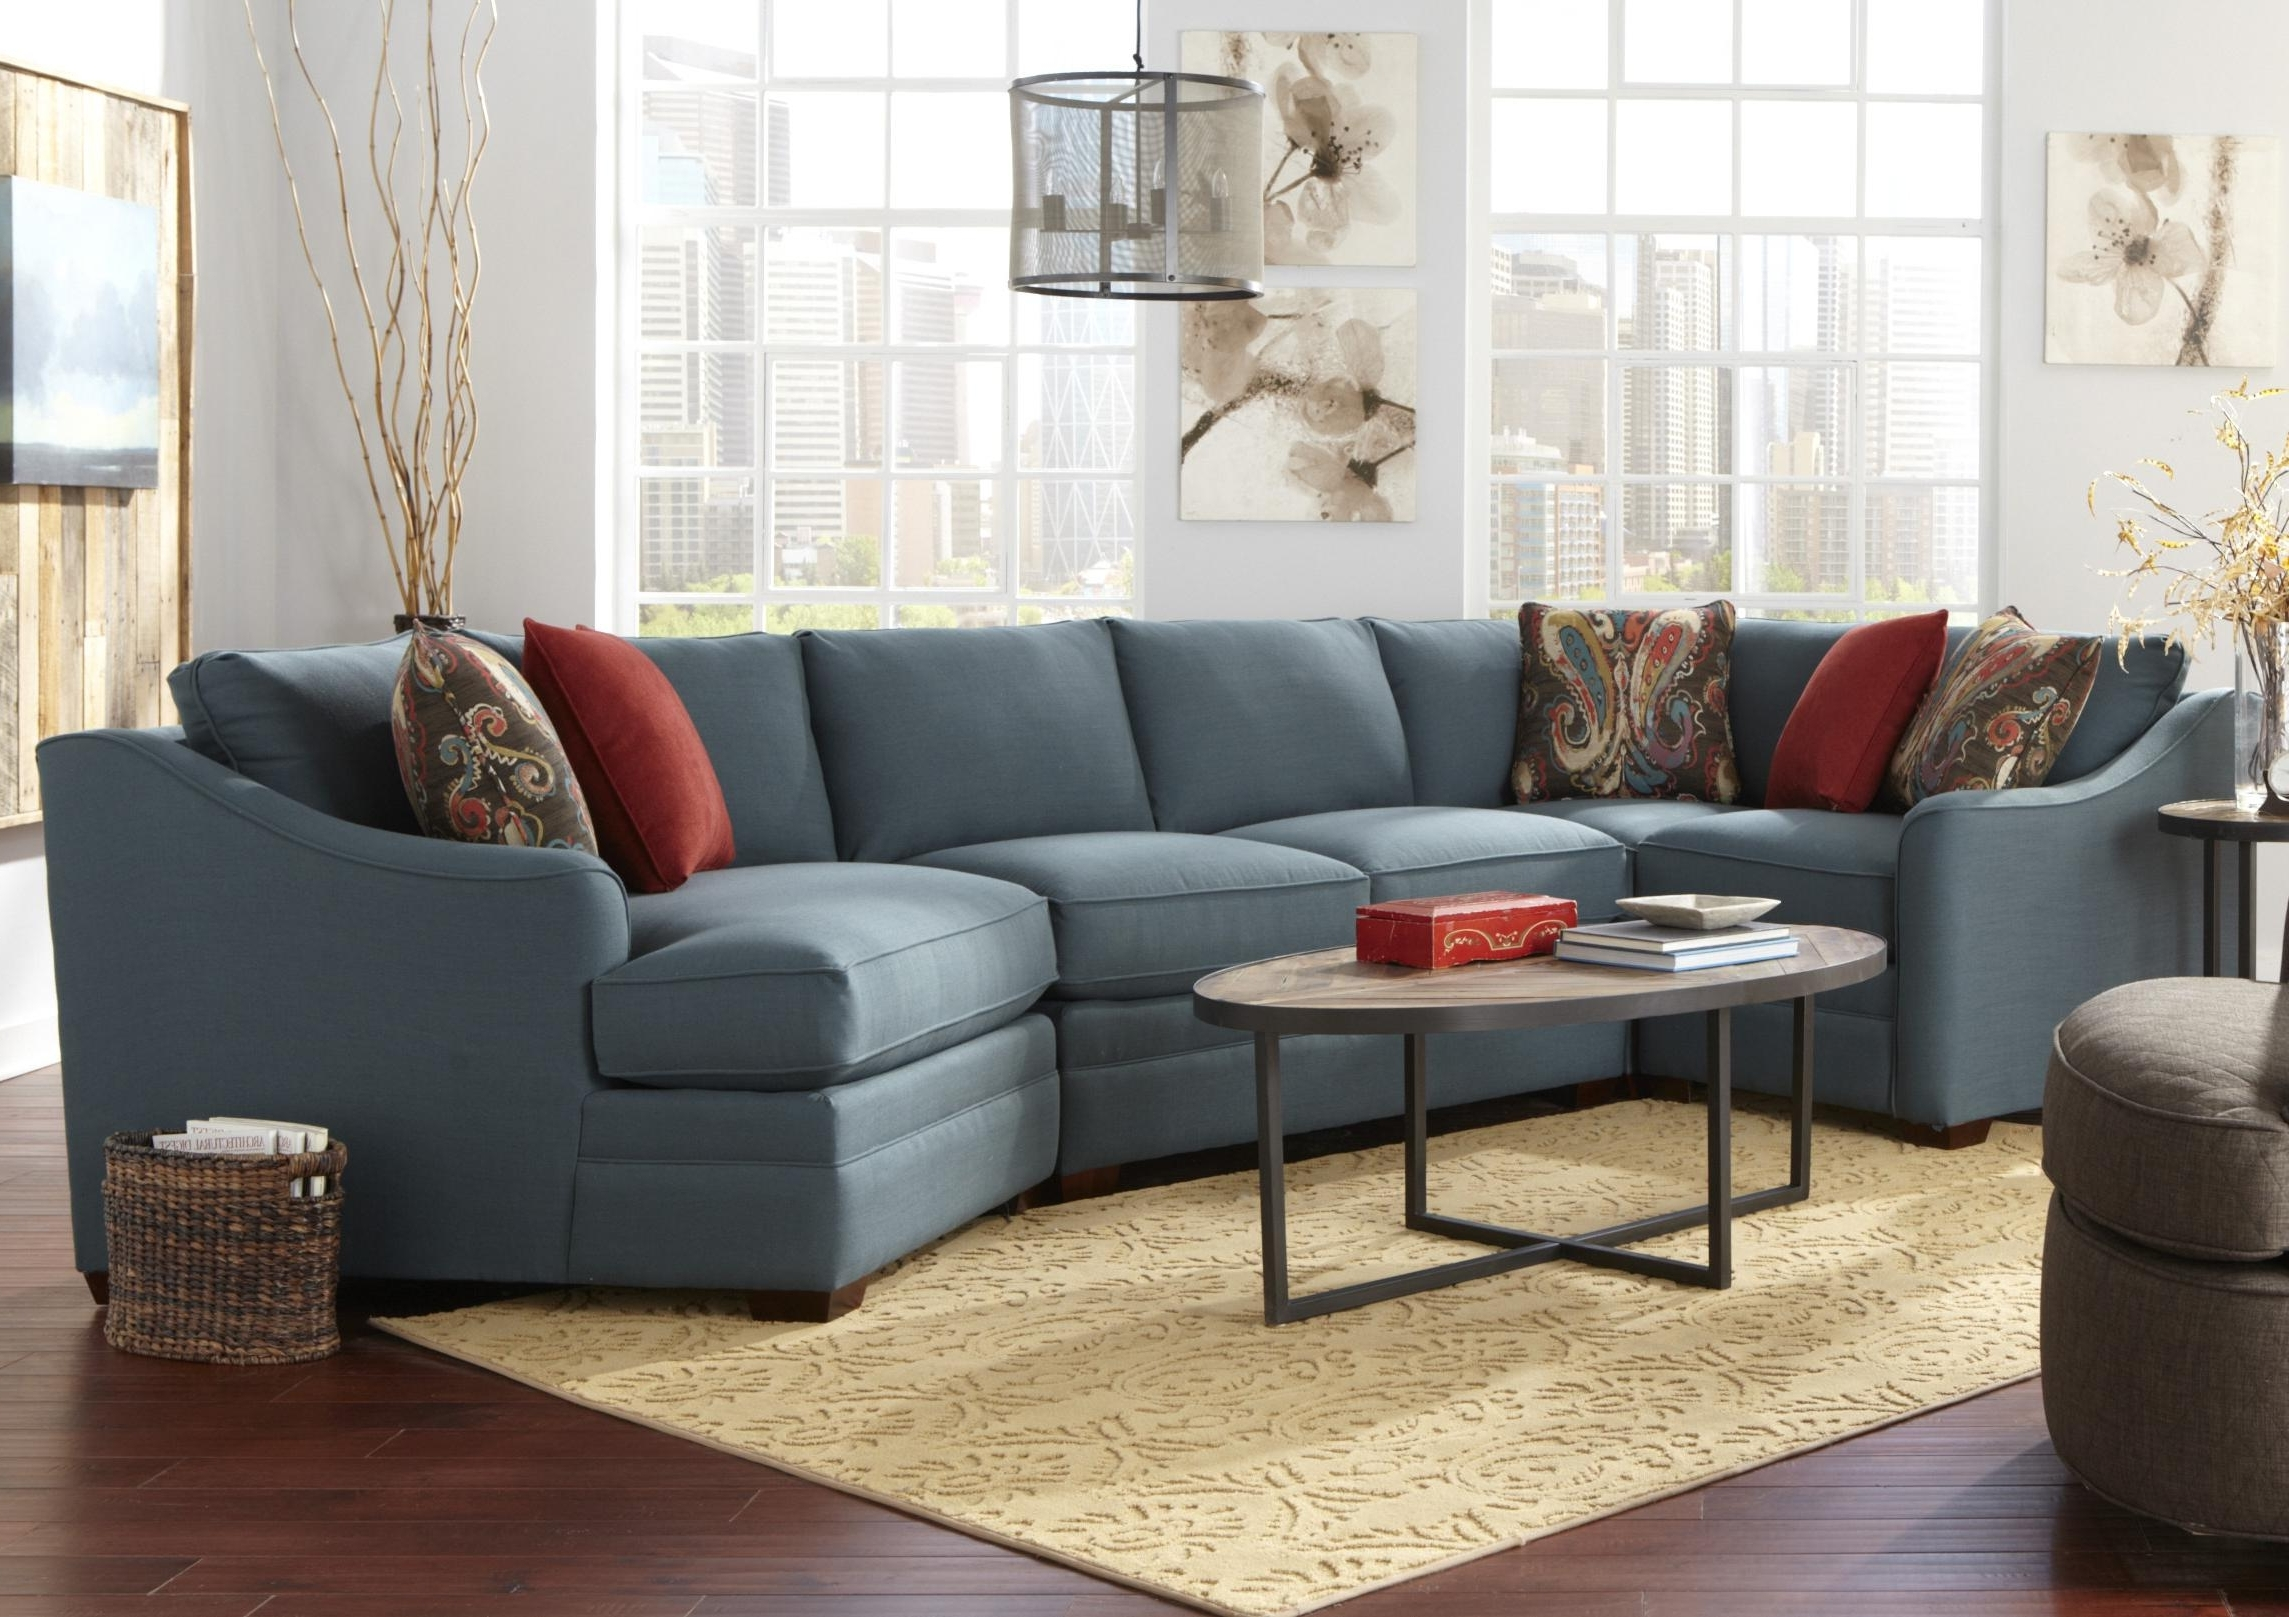 Four Piece <B>Customizable</b> Sectional Sofa With Raf Cuddler For Well Known Sectionals With Cuddler And Chaise (View 7 of 15)